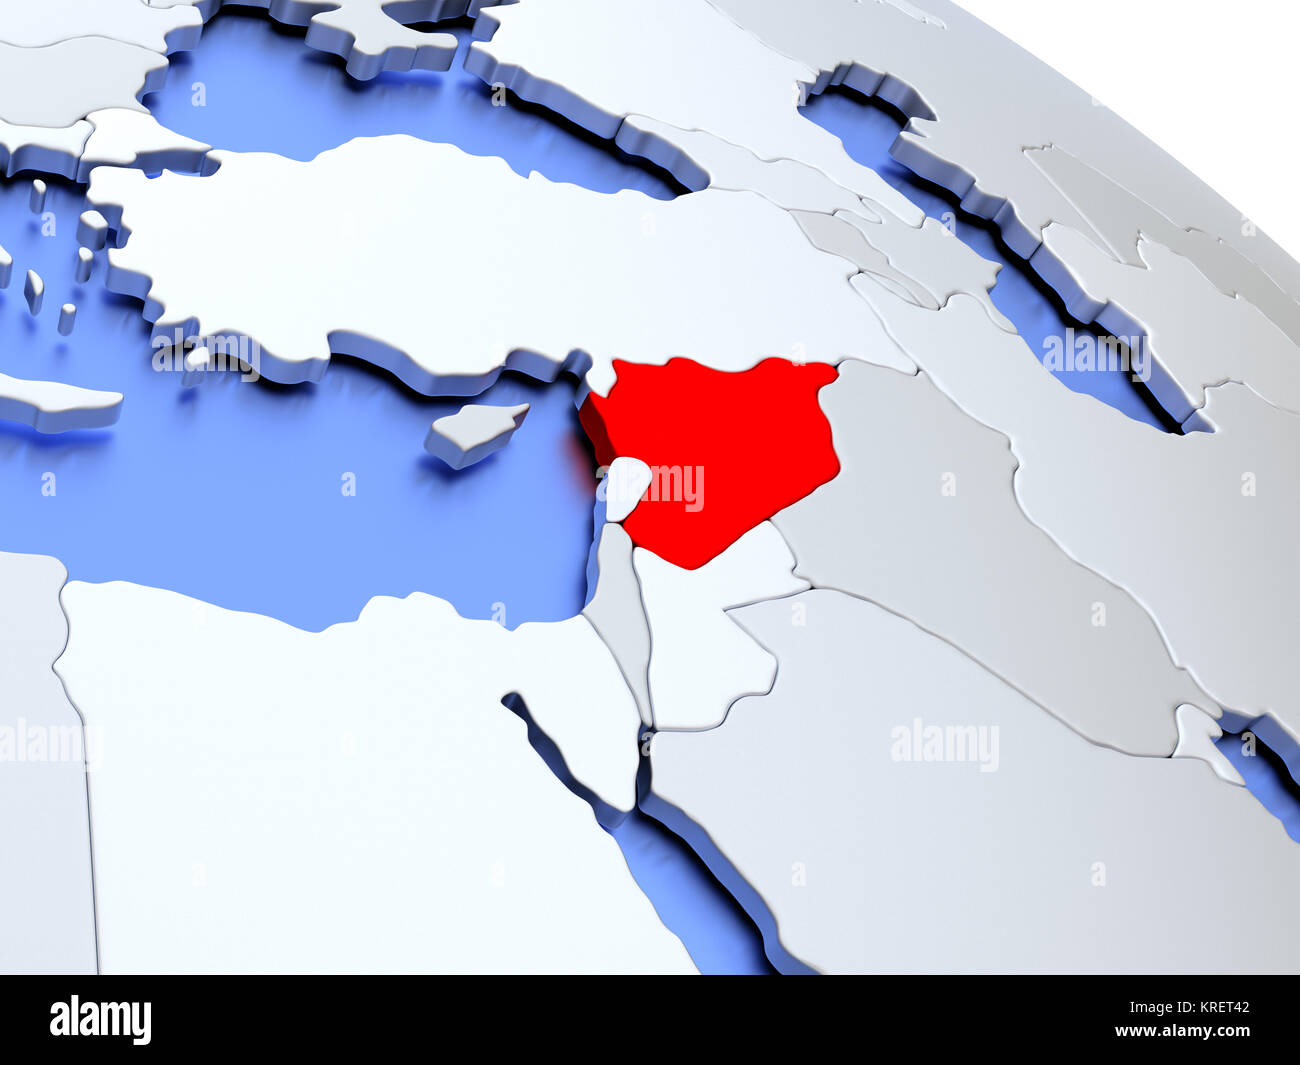 Syria map 3d stock photos syria map 3d stock images alamy syria on world map stock image publicscrutiny Gallery